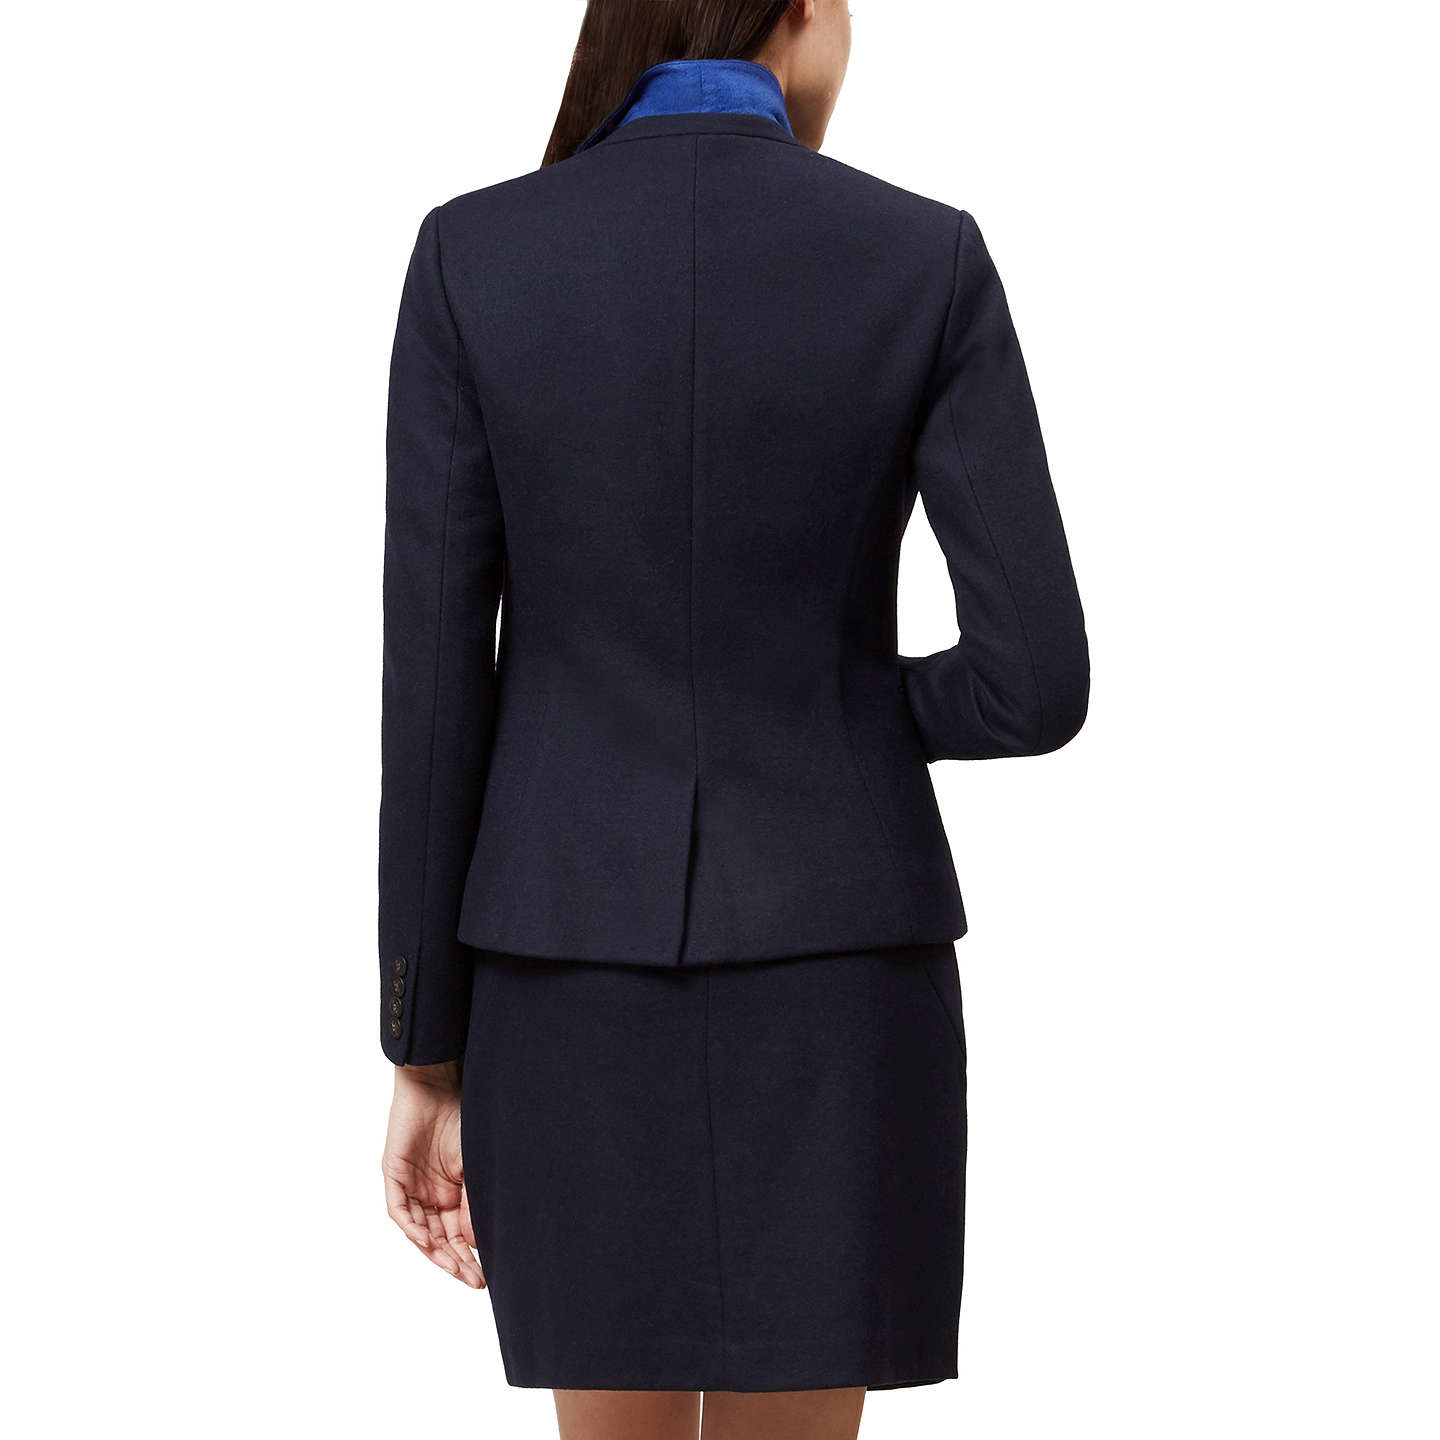 BuyHobbs Joella Jacket, Navy, 14 Online at johnlewis.com